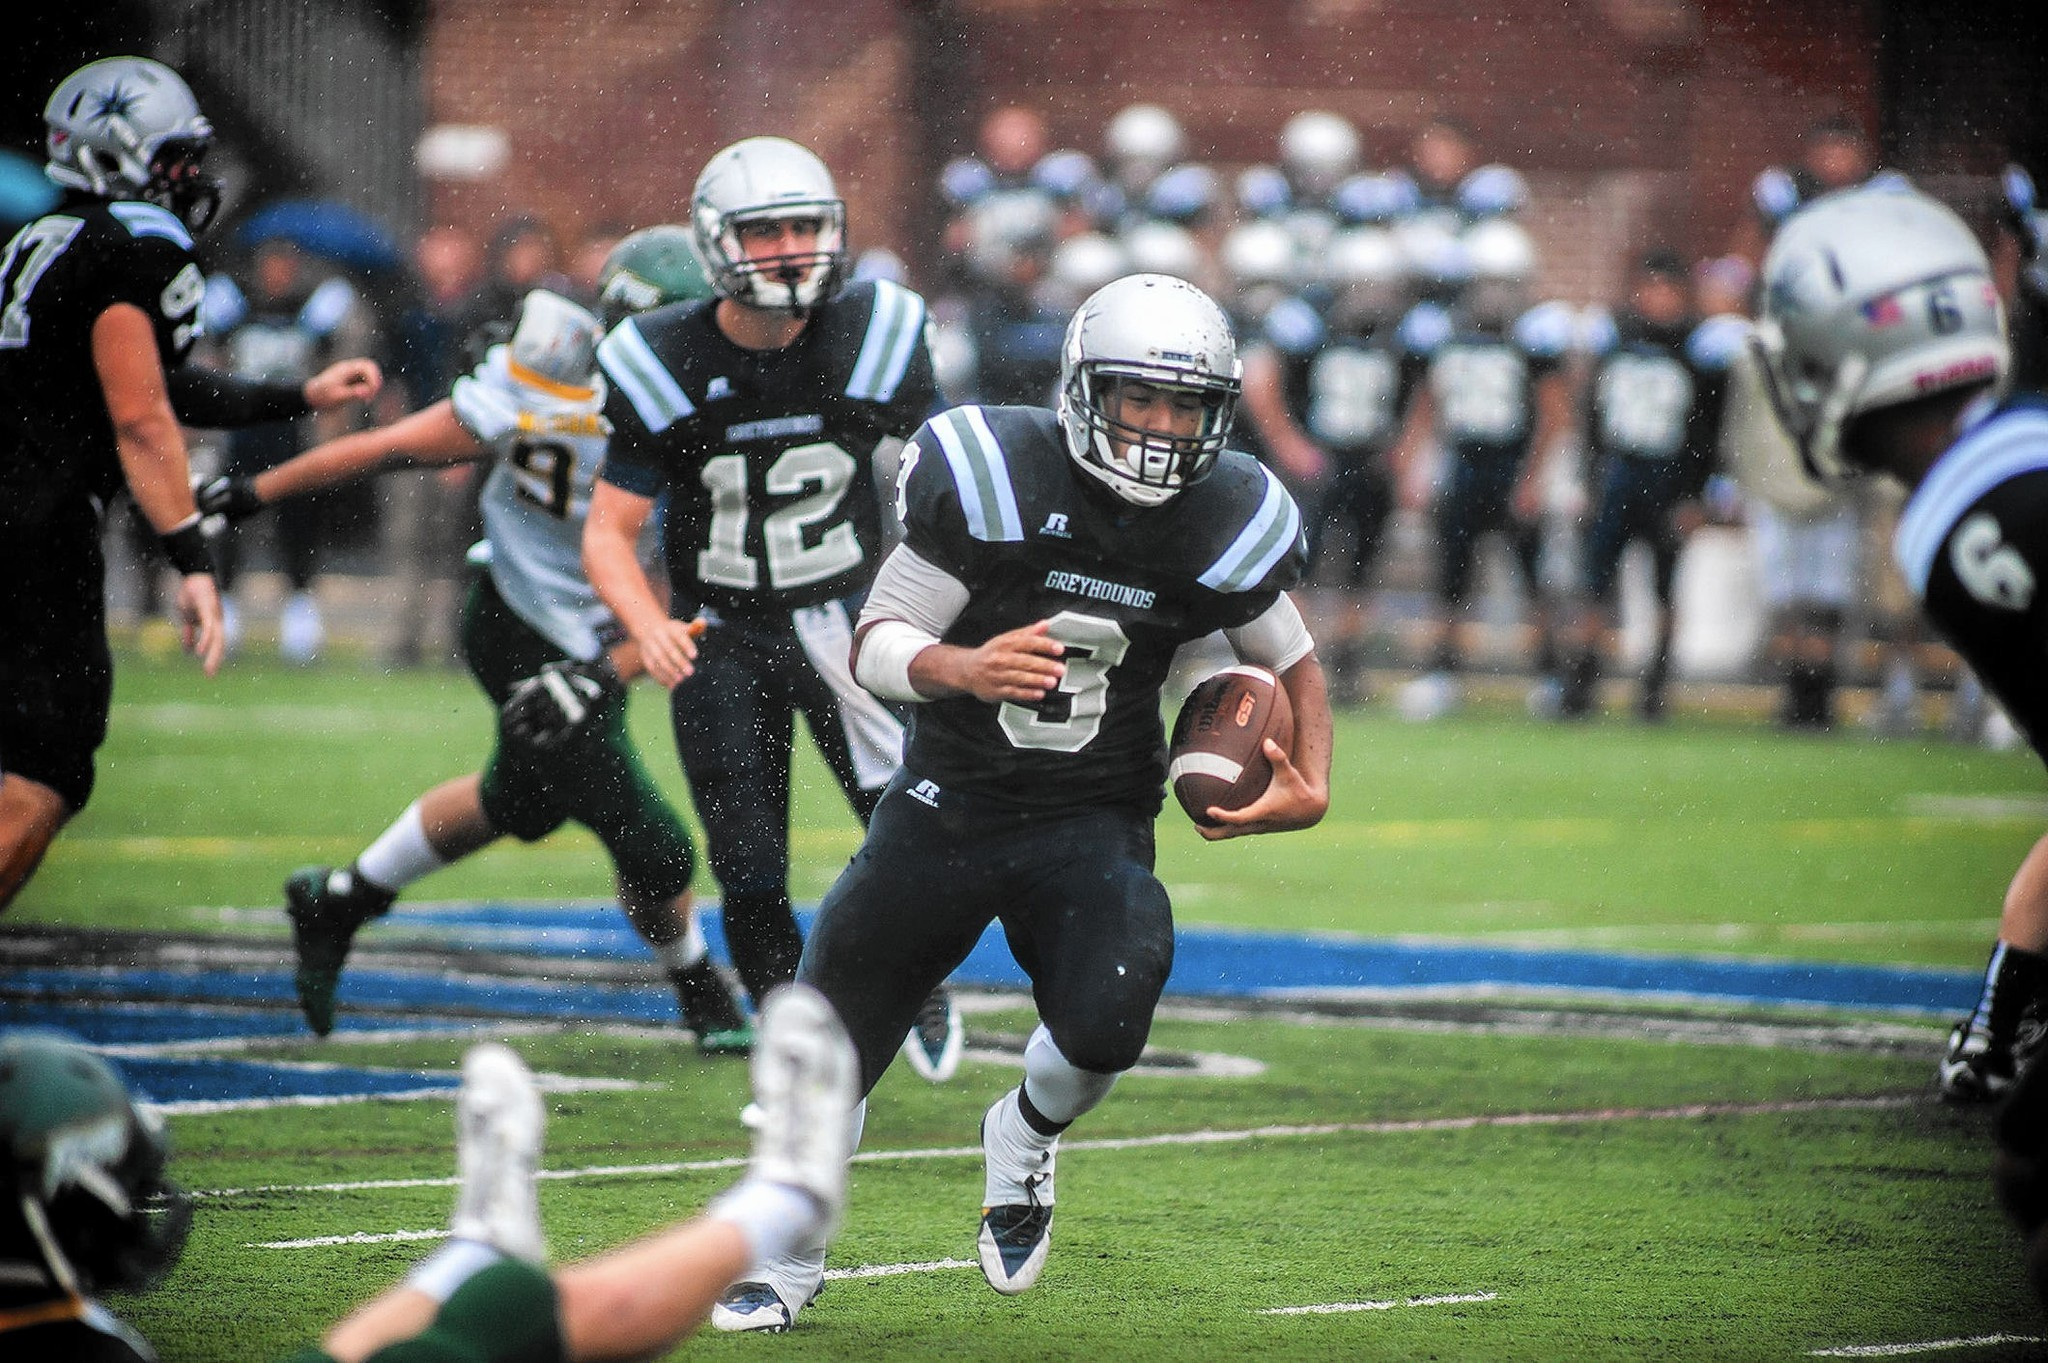 Muhlenberg Moravian Annual College Football Game Has Playoff Berth